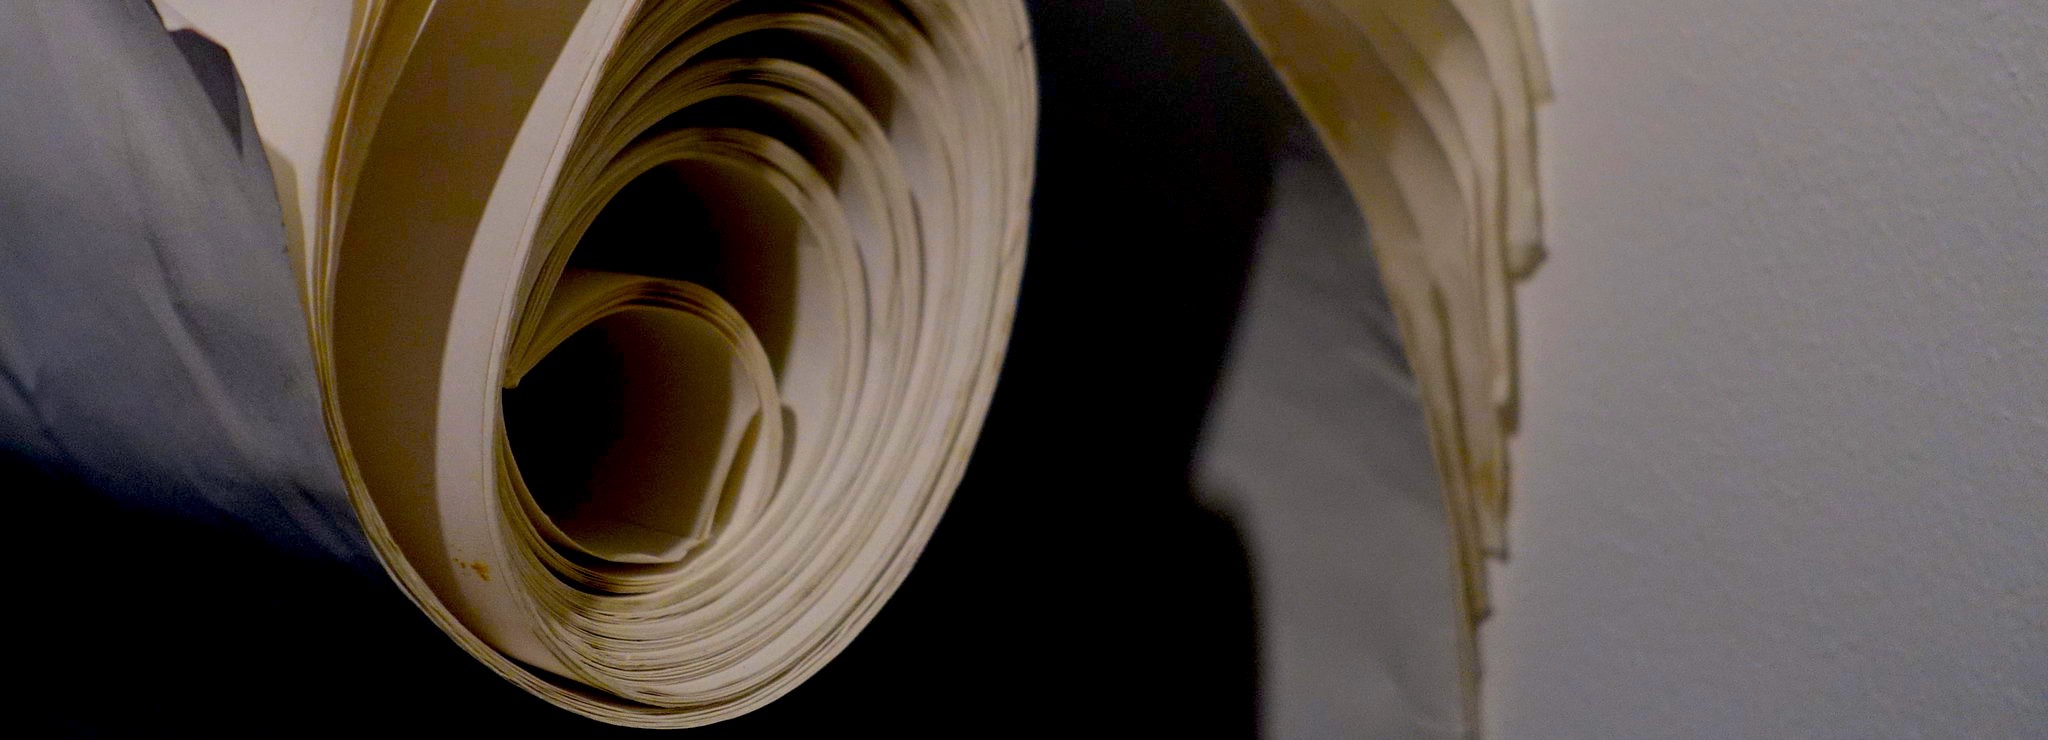 A book or bound report rolled up and allowed to unfurl